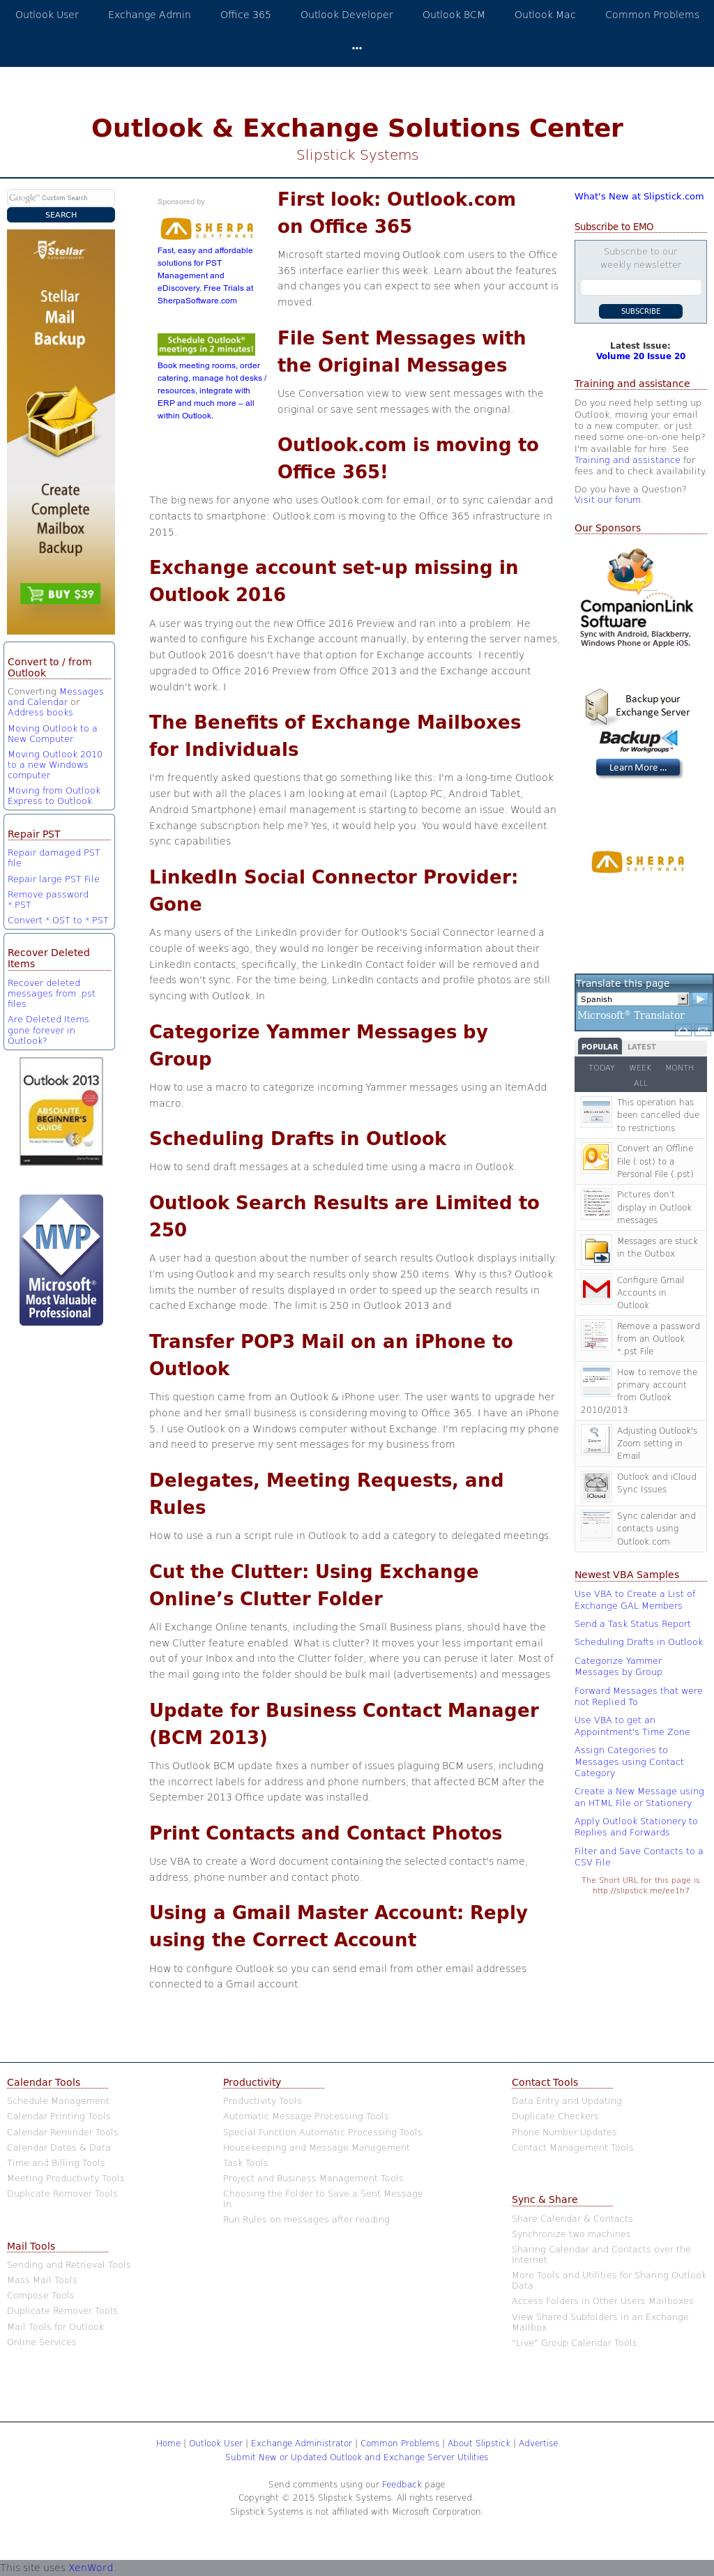 Slipstick Systems Exchange And Outlook Solutions Center Competitors